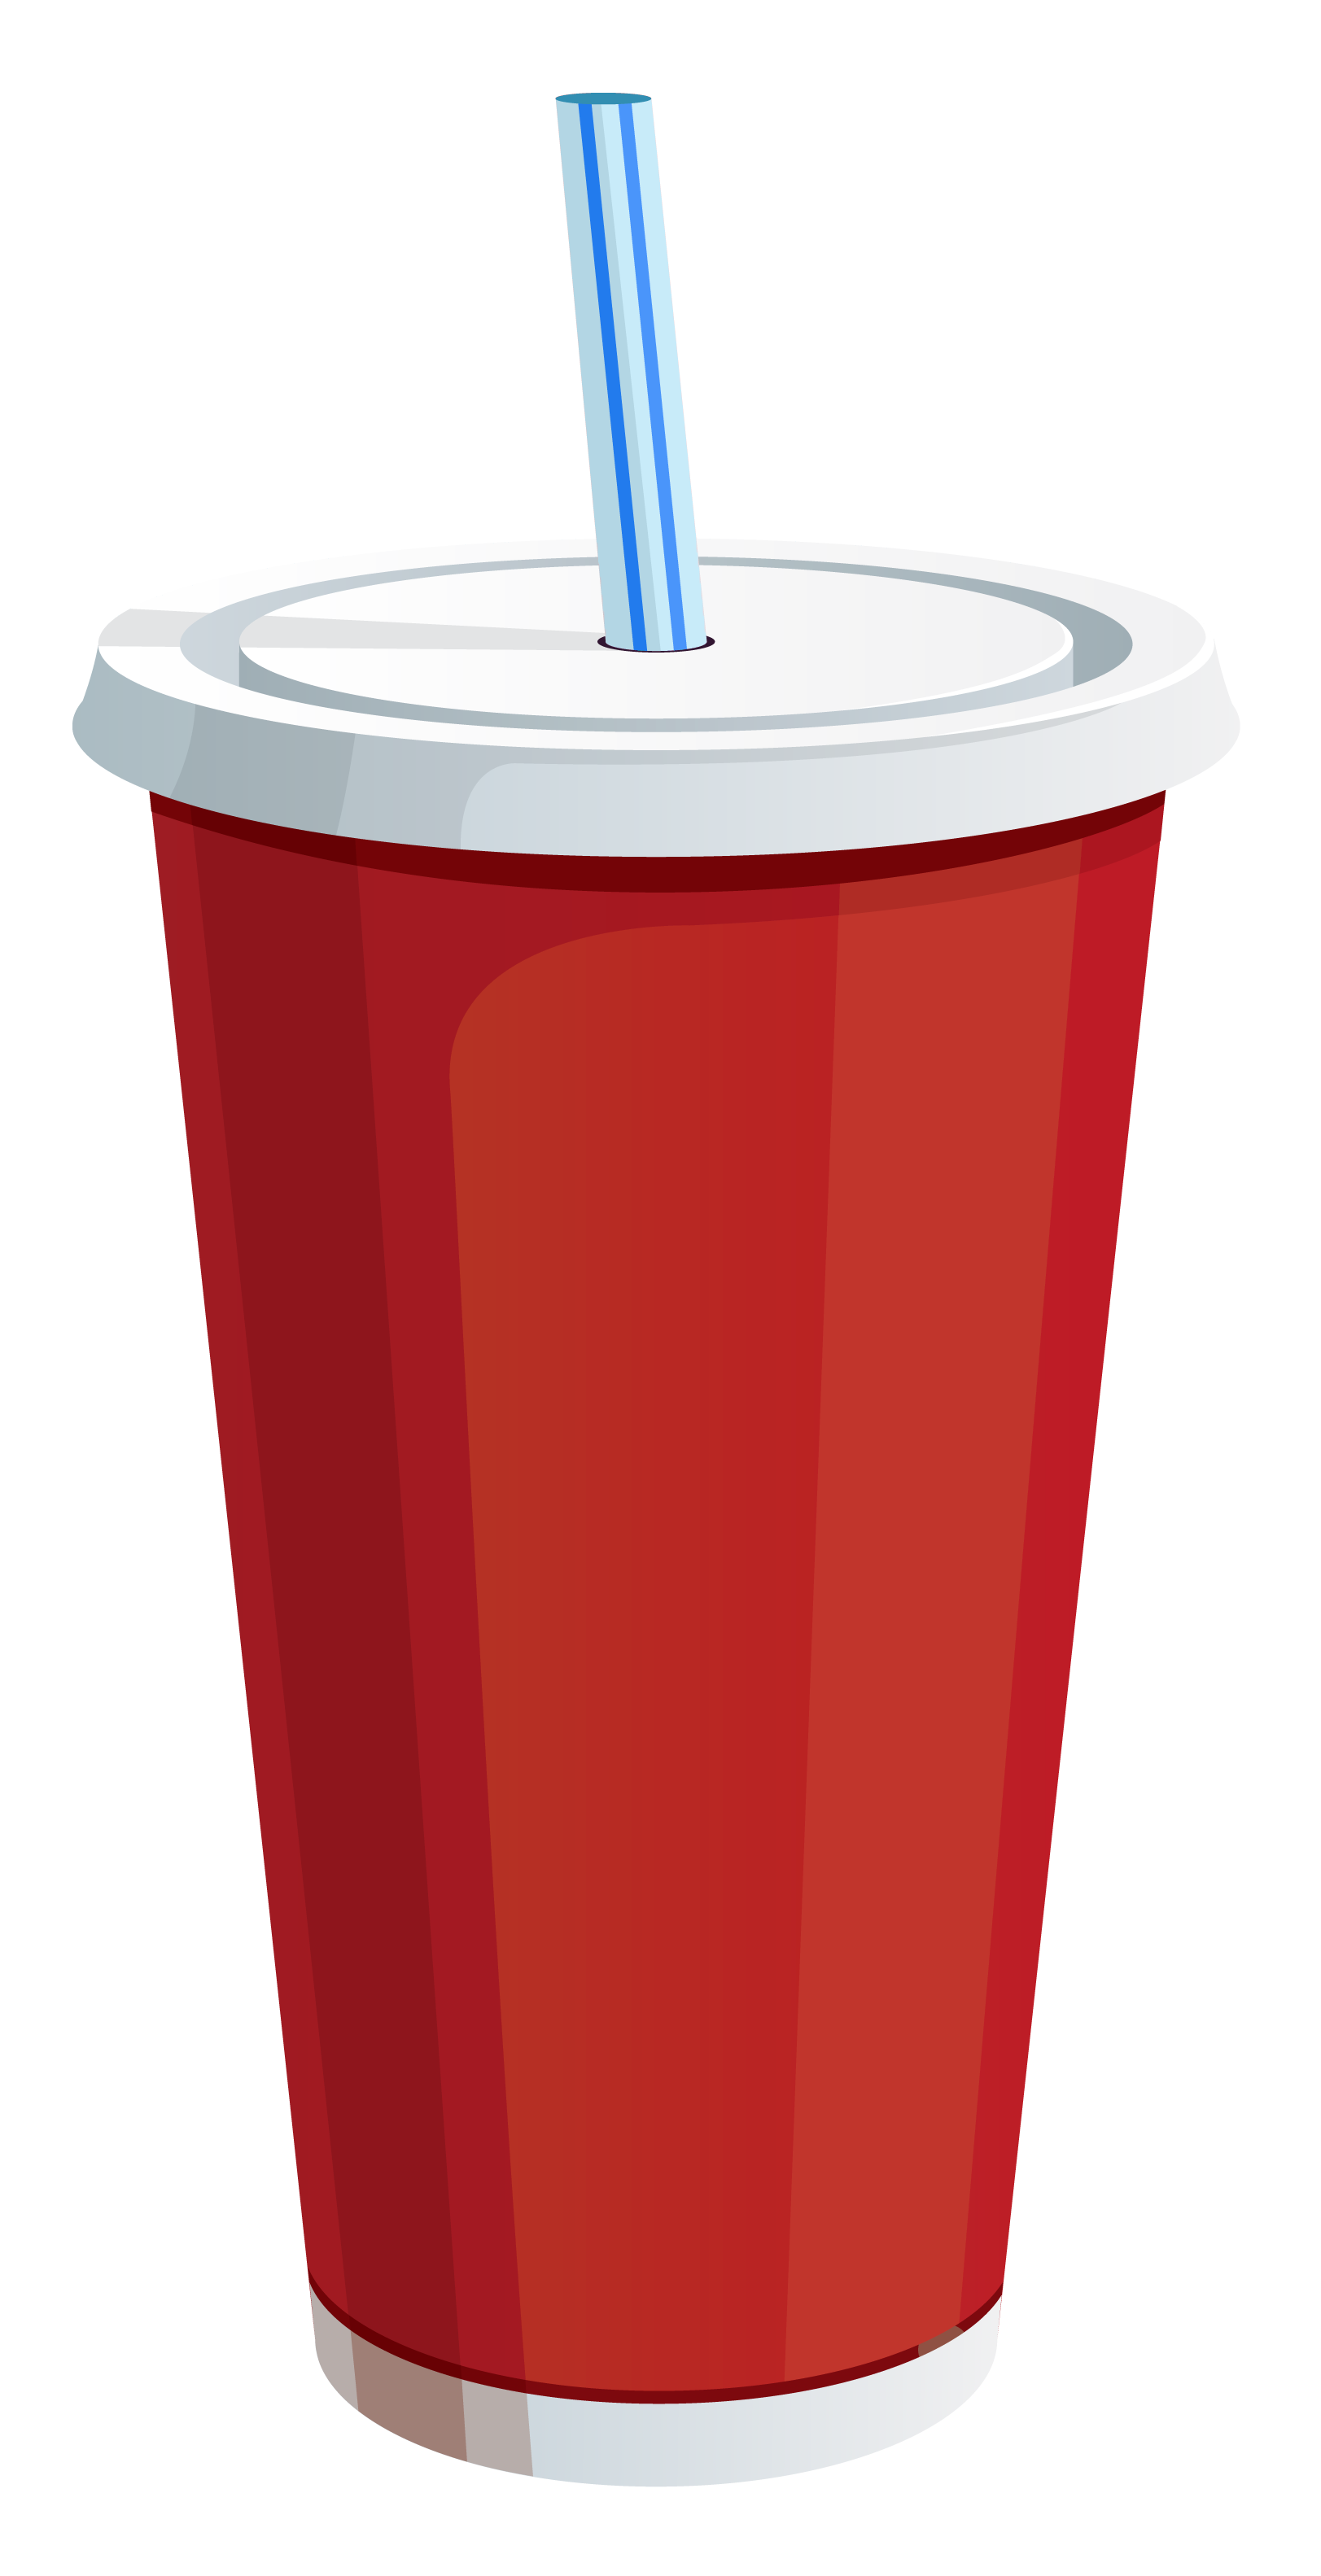 Red Plastic Drink Cup PNG Vector Clipart Image.